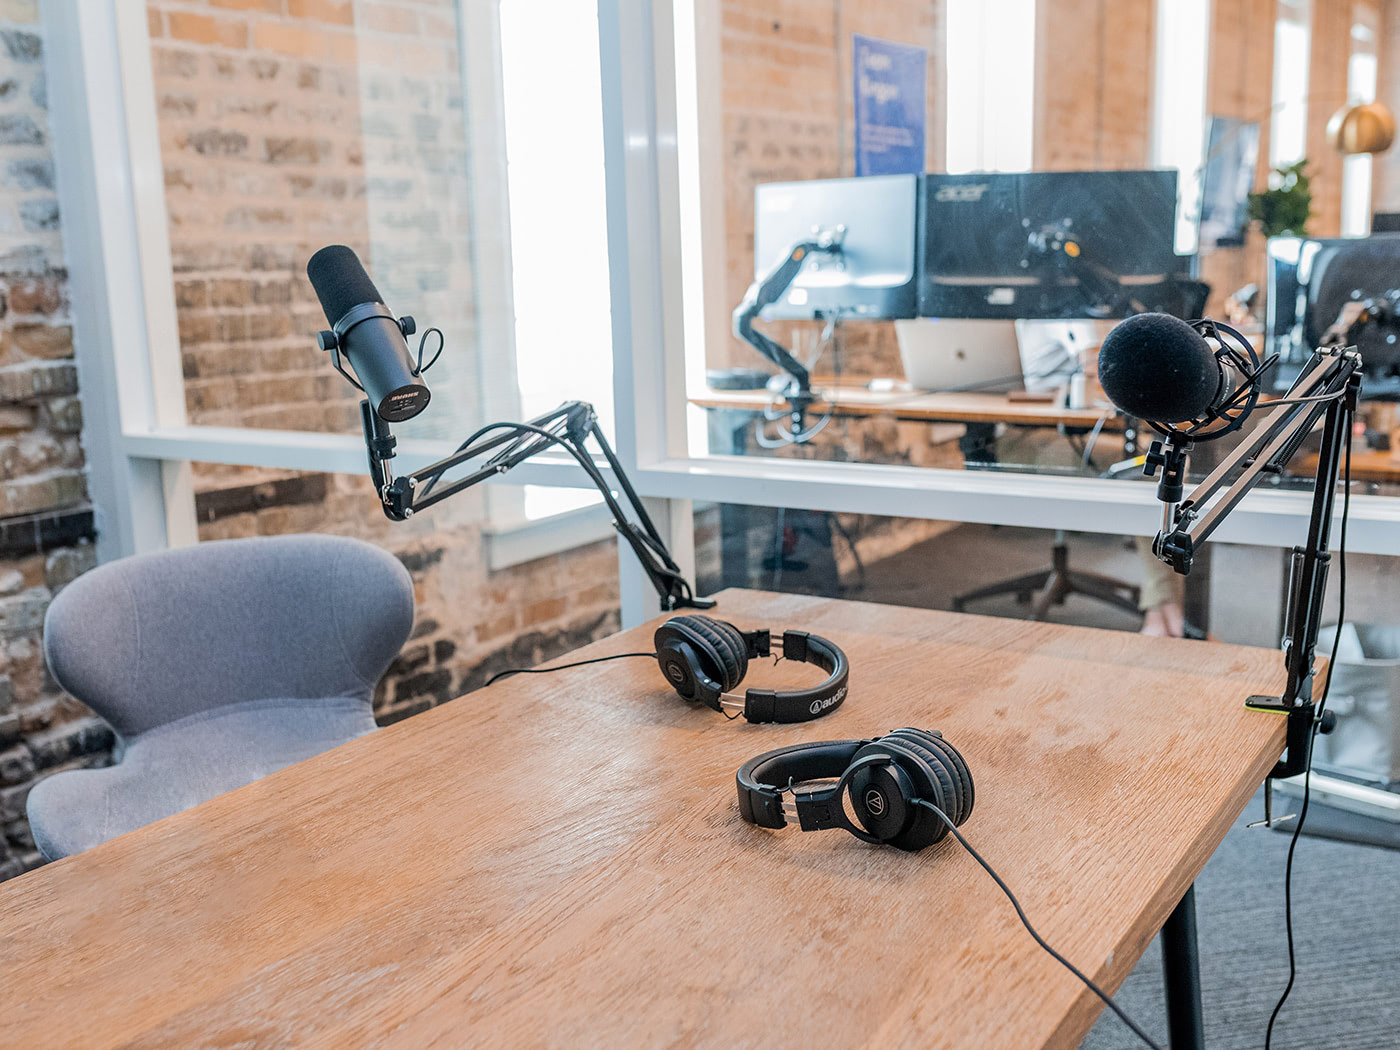 Podcast studio setup with chair table and microphone